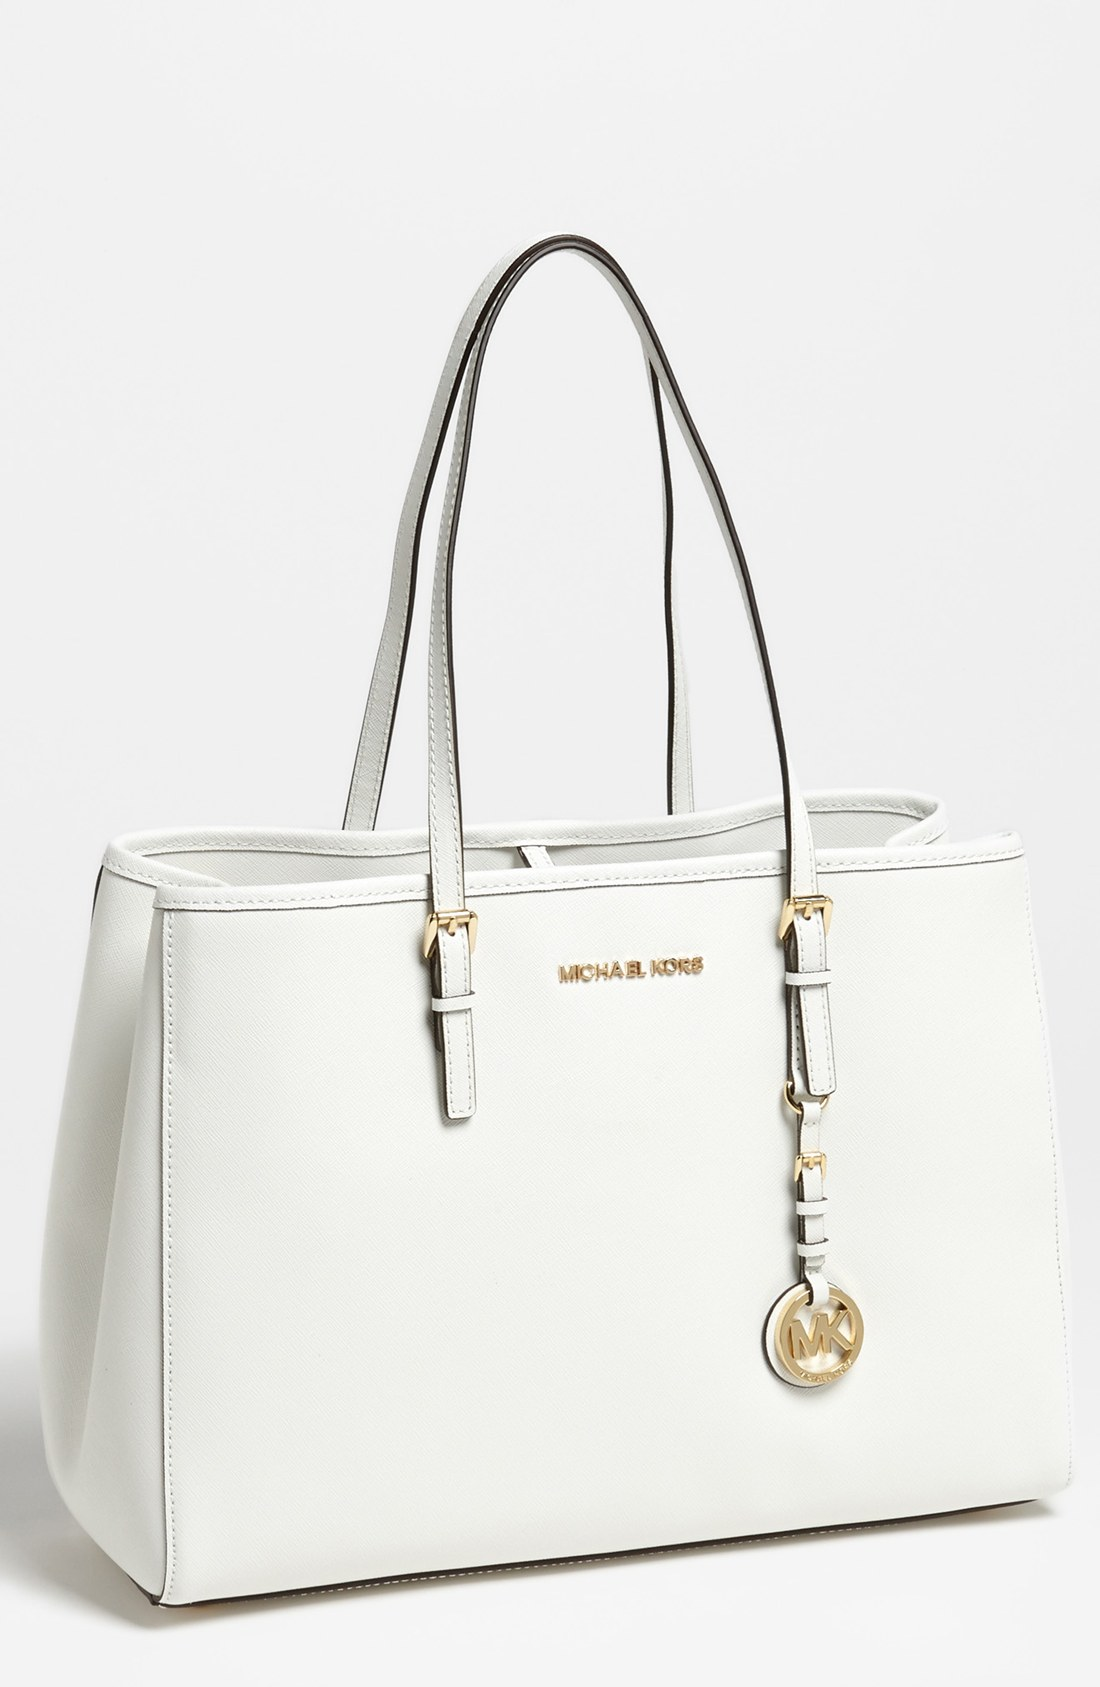 9574d29a5 ... Michael michael kors Jet Set Large Travel Tote in White Lys ...